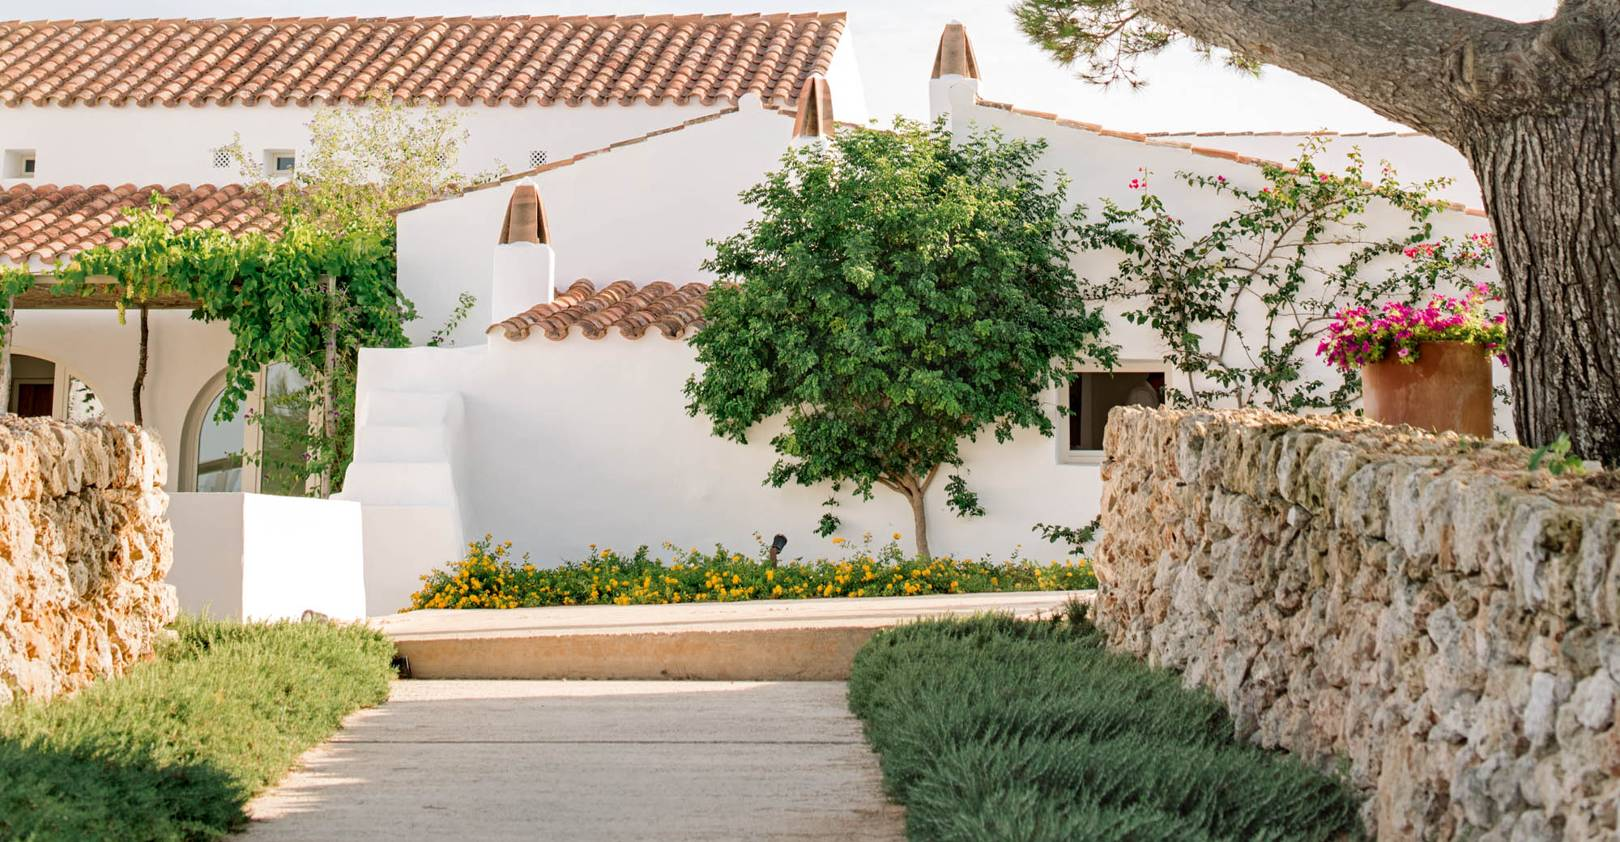 Where to stay in Menorca